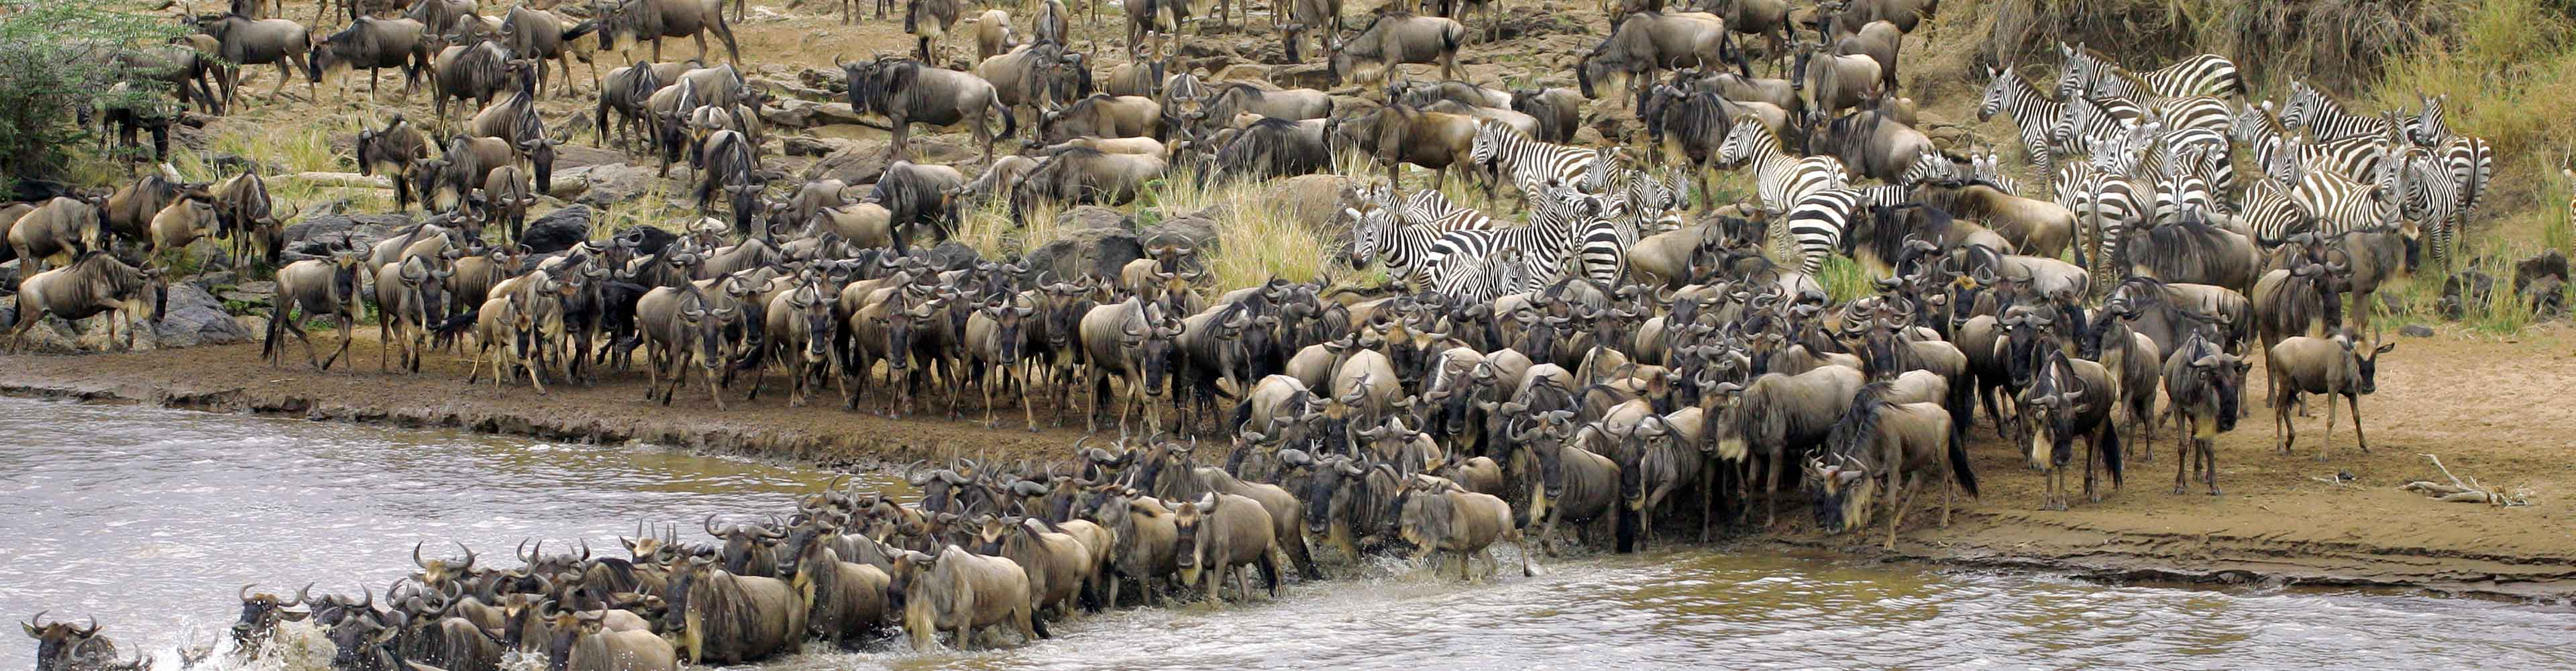 East Africa Migration Safari: Limited Edition